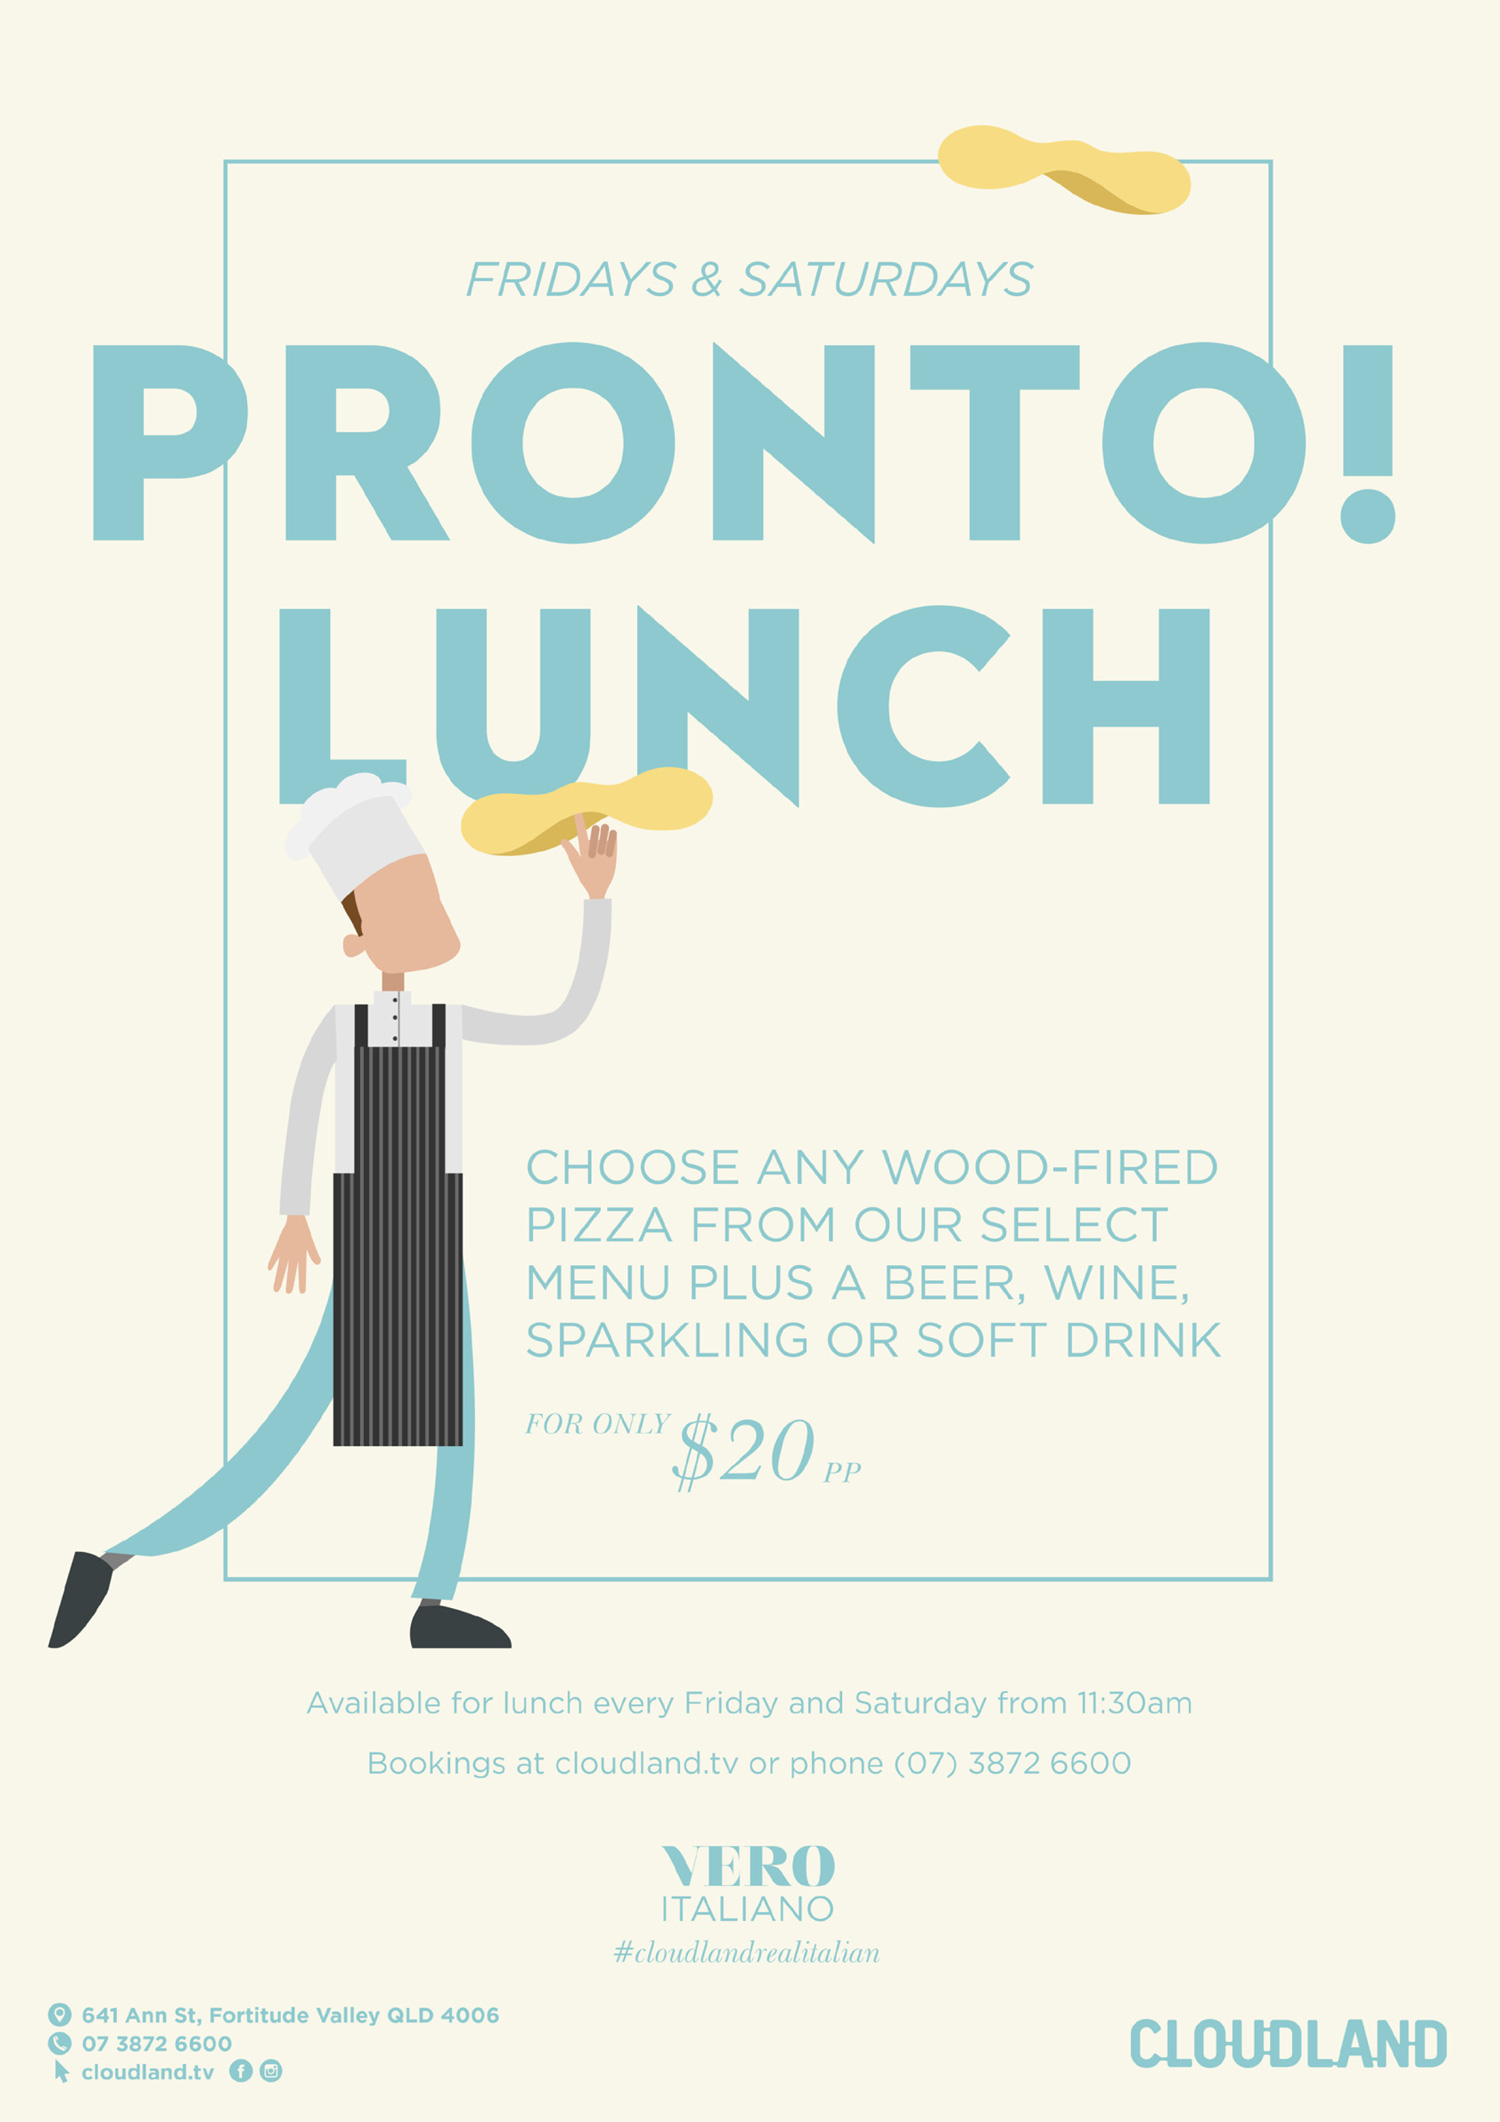 Cloudland Pizza and Drink Lunch Friday & Saturday